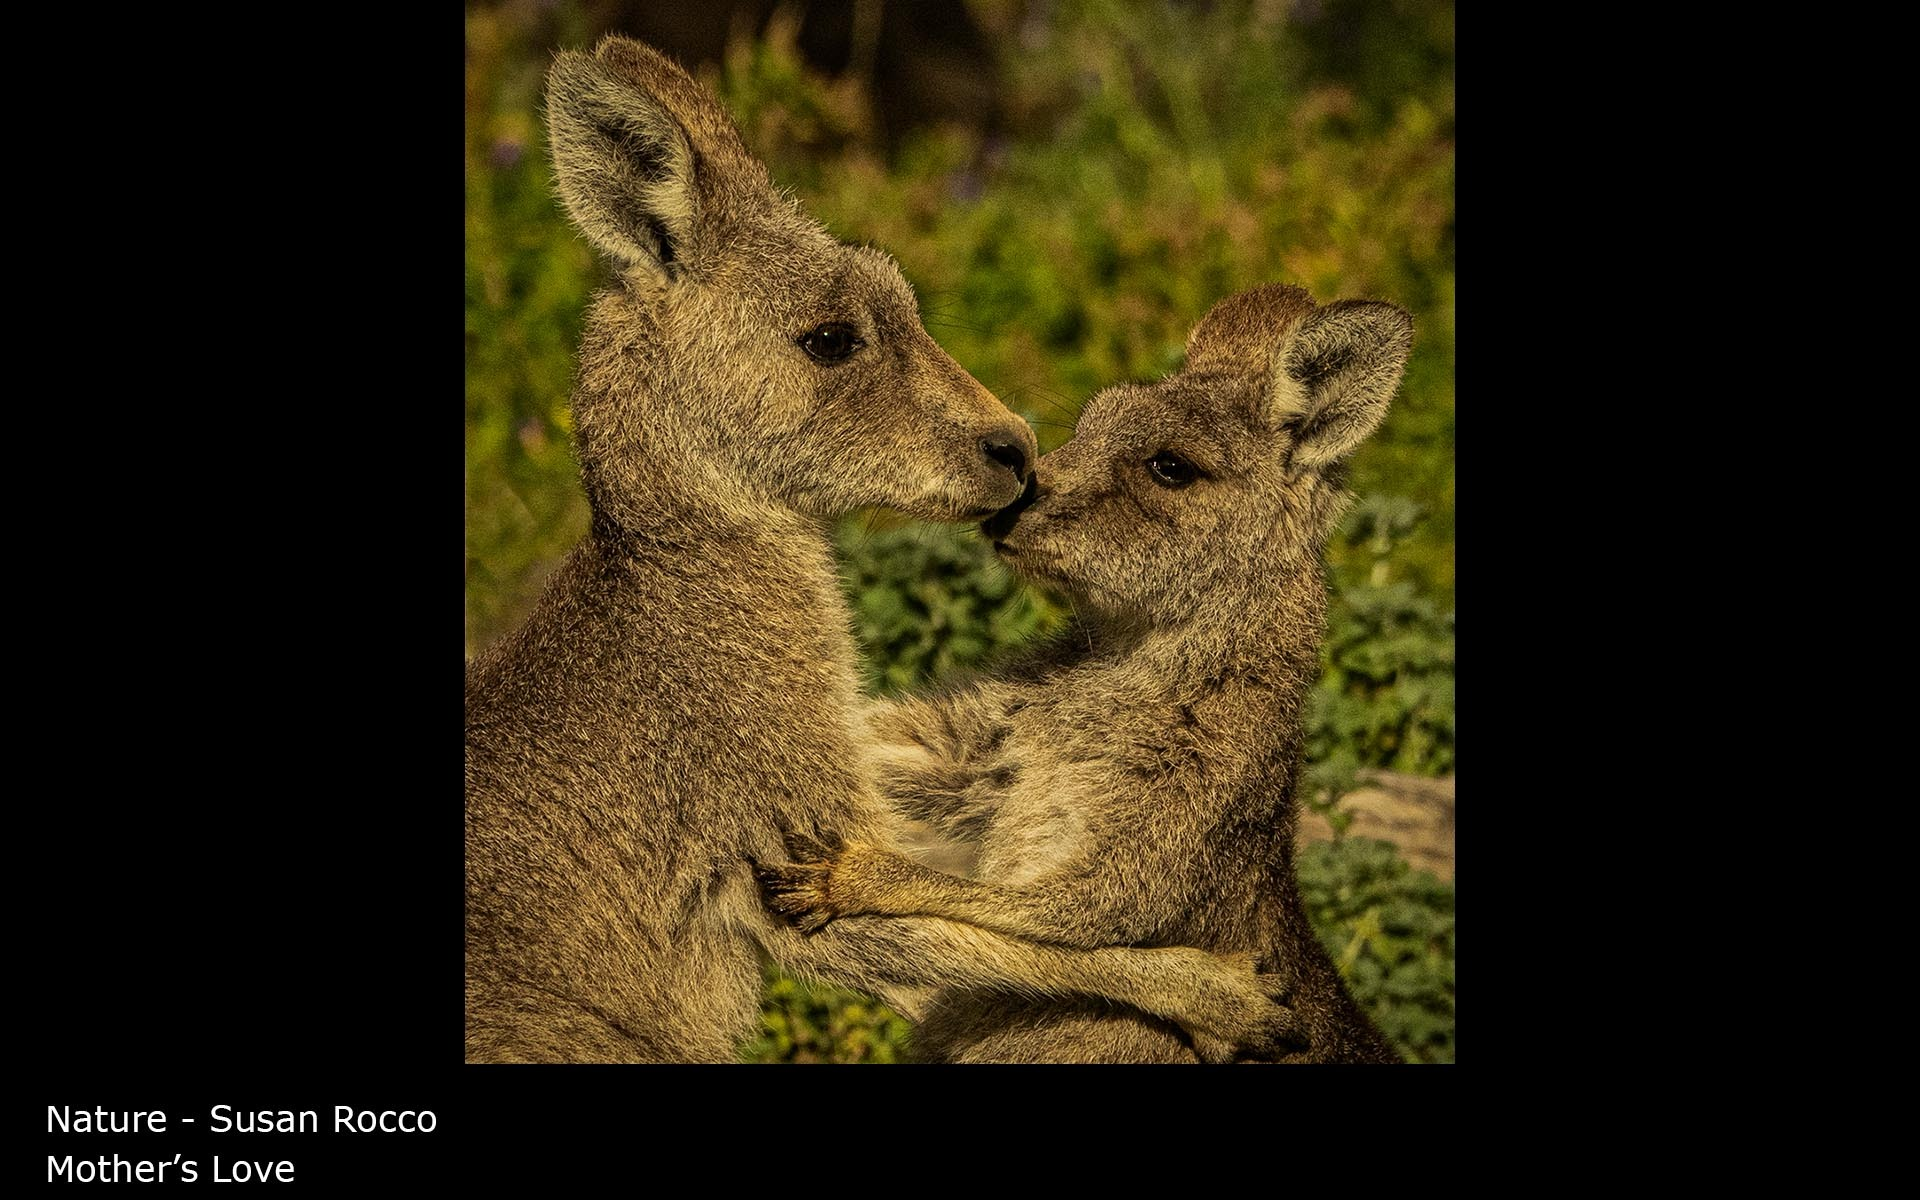 Mother's Love - Susan Rocco